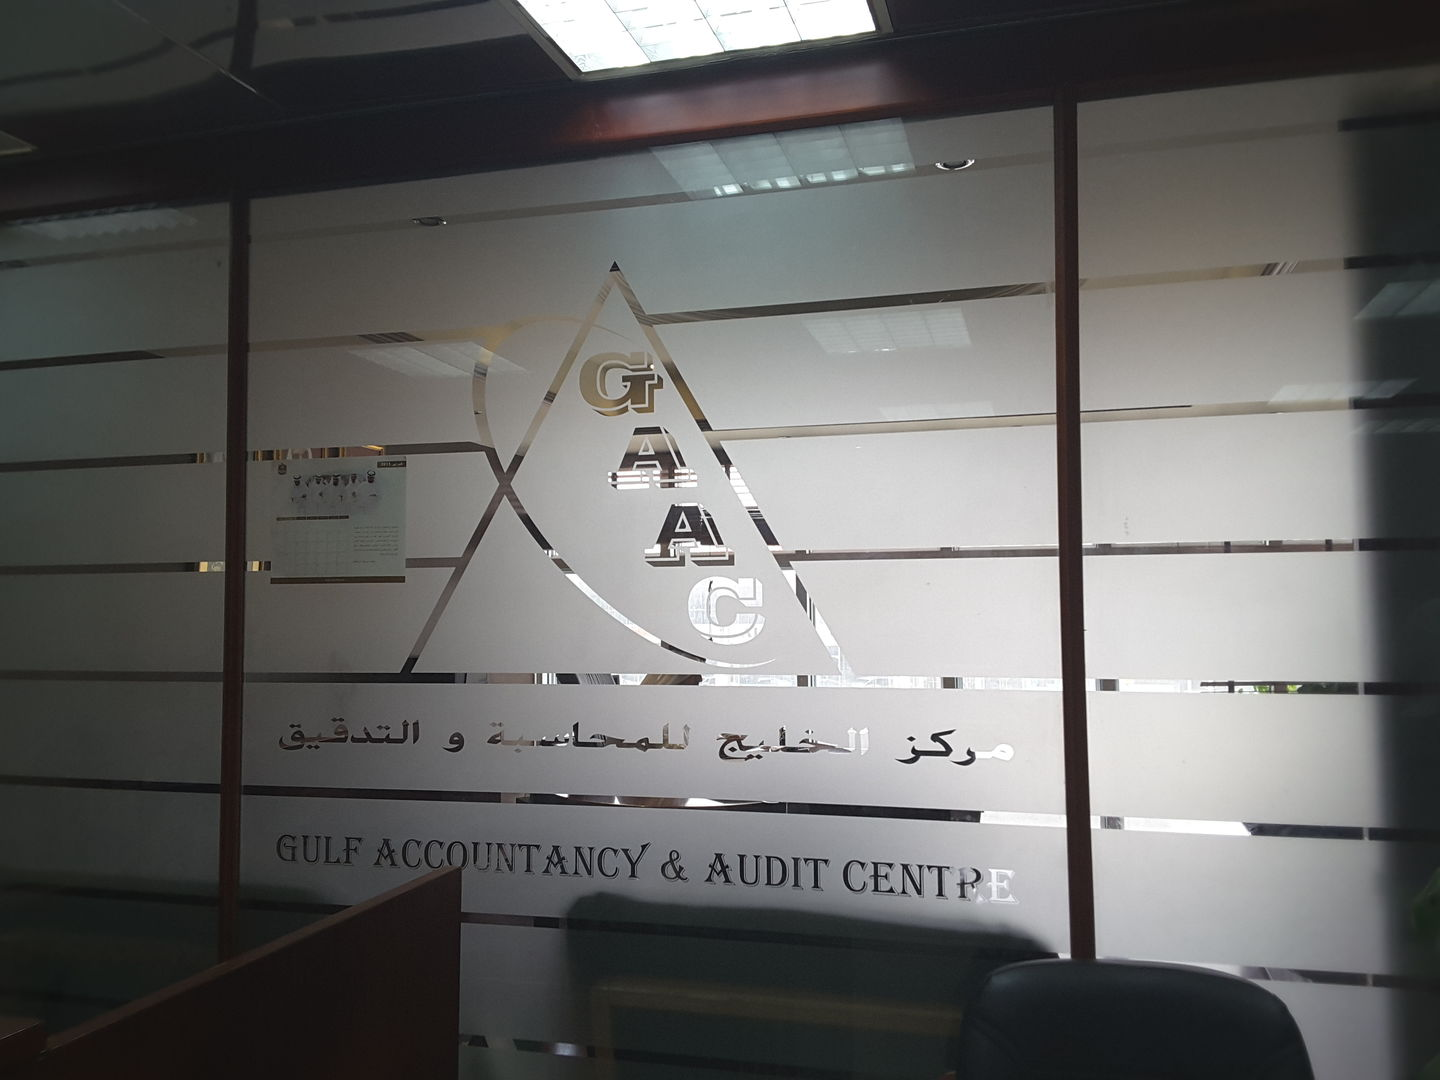 HiDubai-business-gulf-accountancy-auditing-center-deira-finance-legal-accounting-services-al-khabaisi-dubai-2